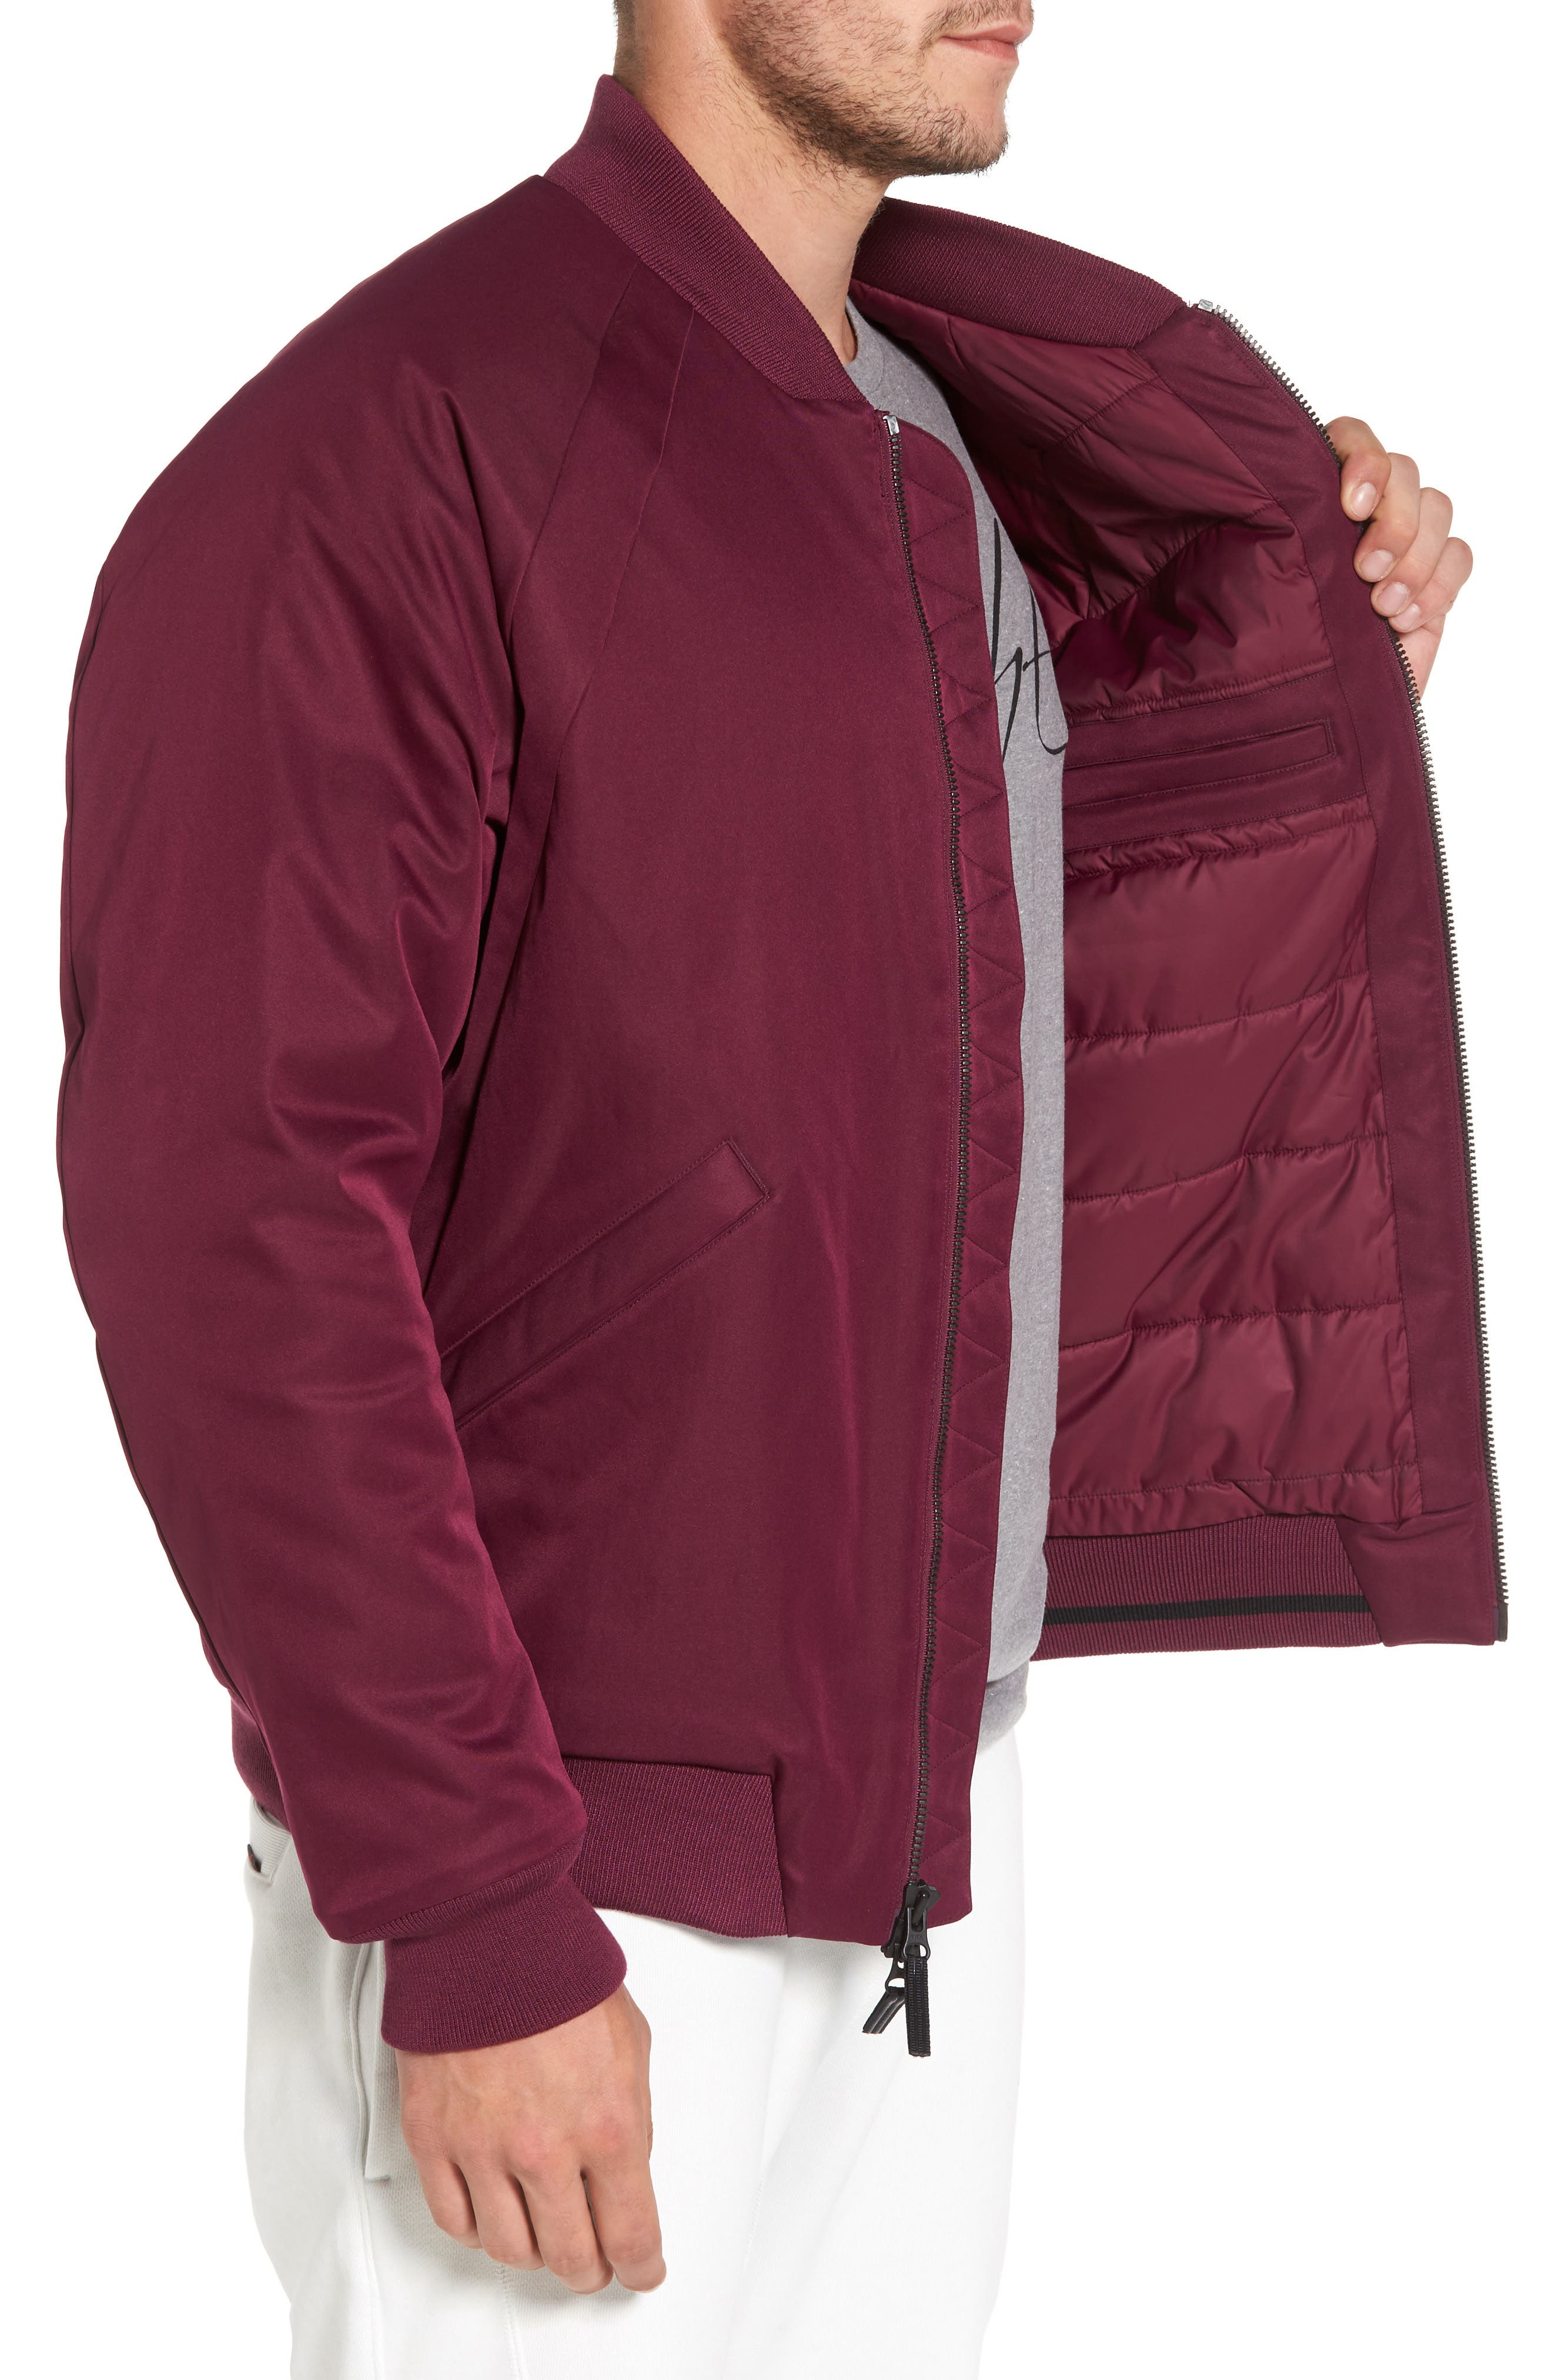 Sportswear Wings MA-1 Bomber Jacket,                             Alternate thumbnail 3, color,                             Bordeaux/ Black